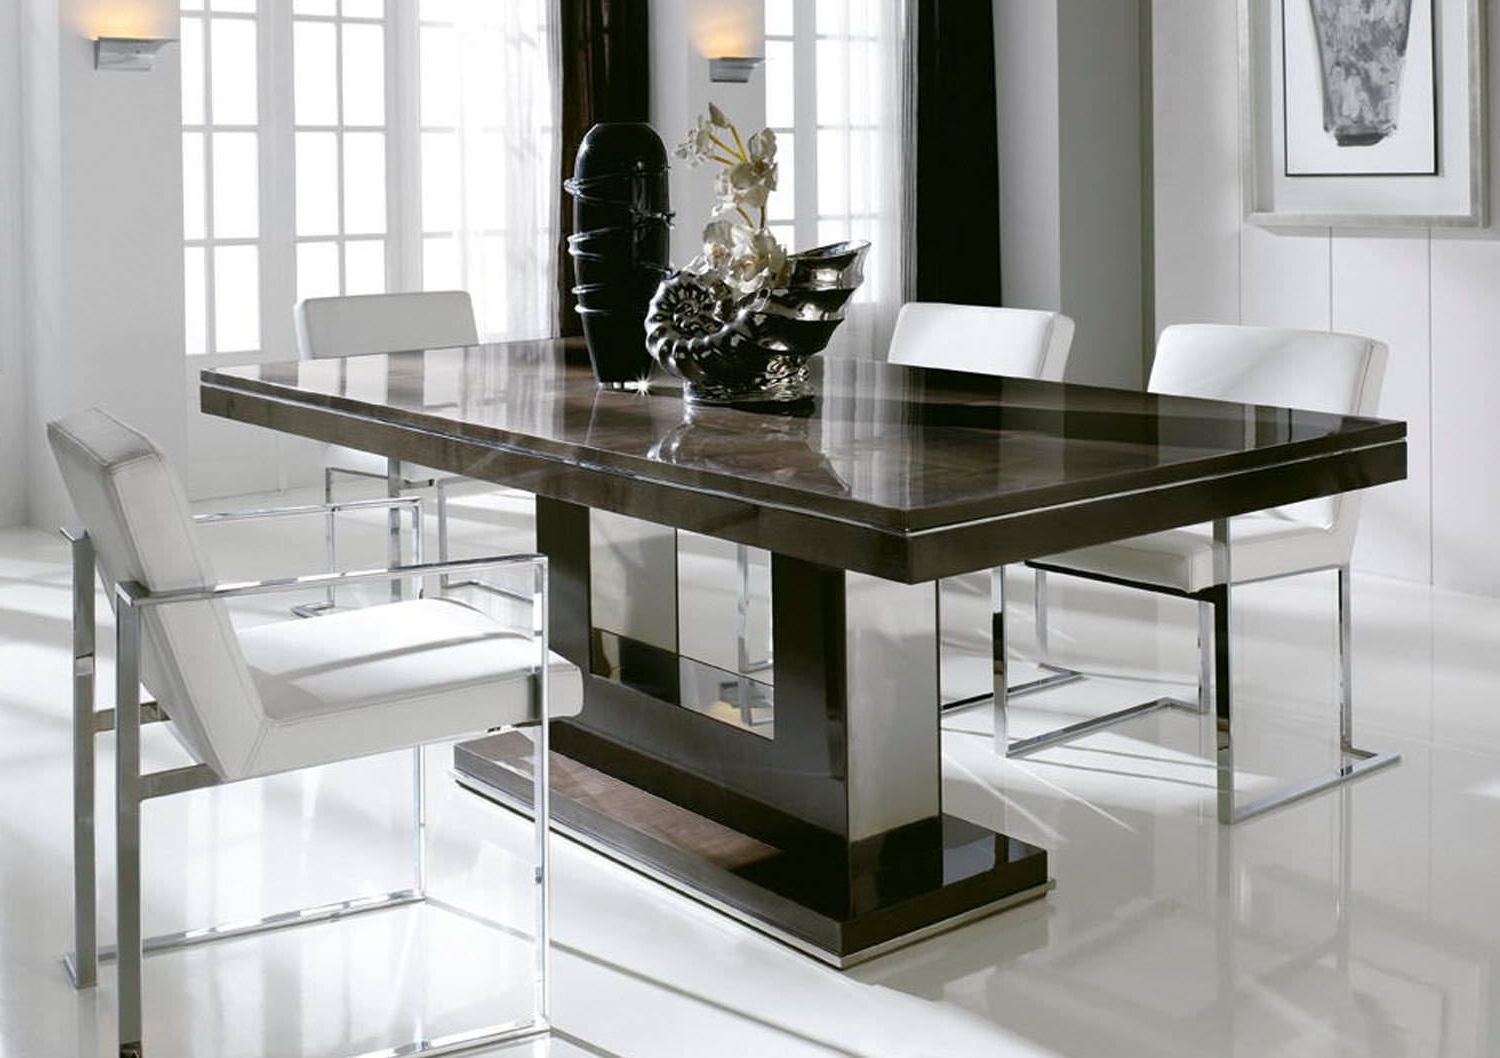 Fashionable Marble Top Dining Table Set Popular In Small Home Decoration Ideas Regarding Modern Dining Sets (View 12 of 25)